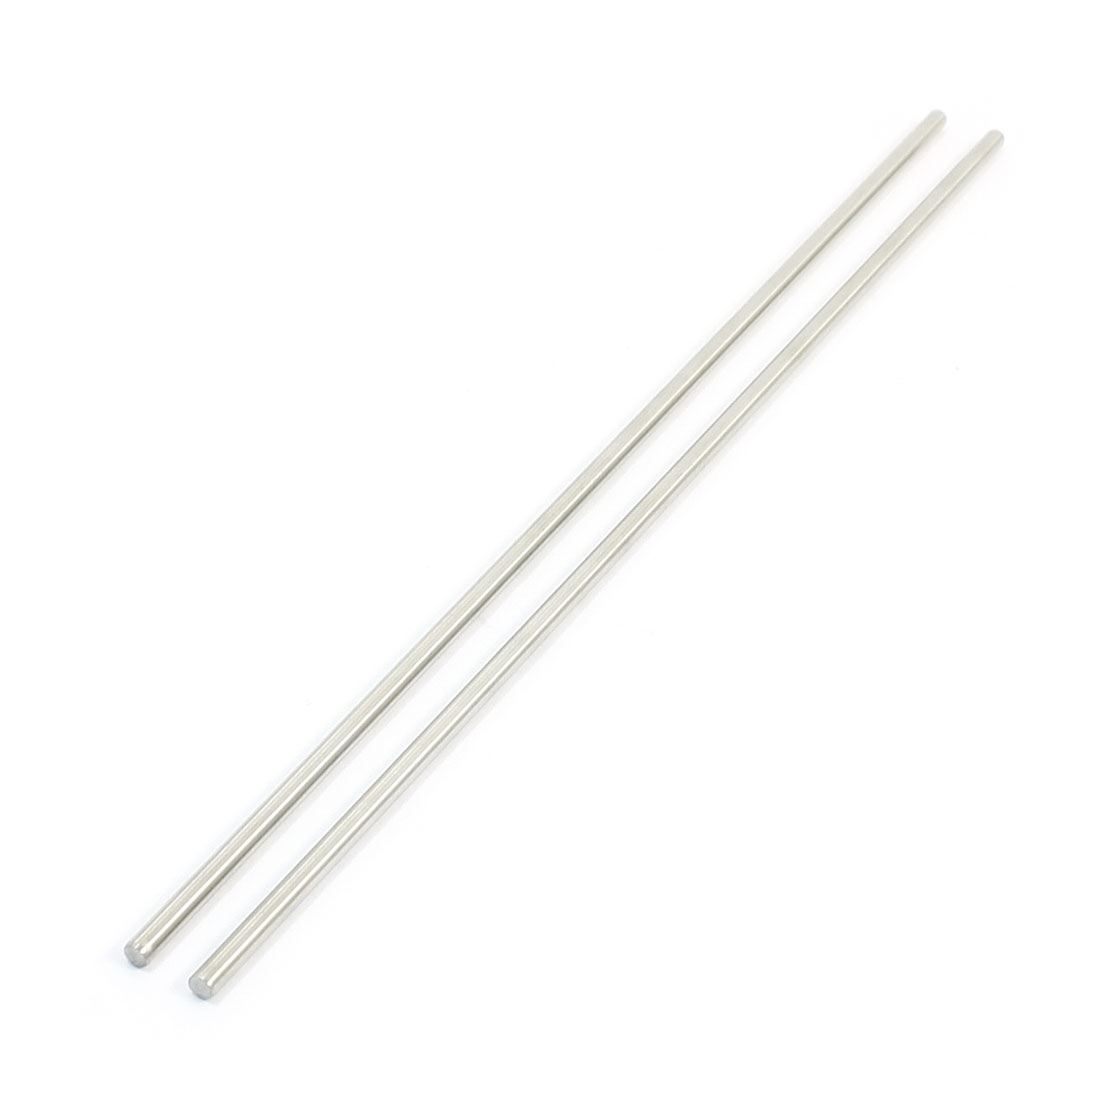 "2Pcs 3mm Diameter Stainless Steel Motion Axle Circular Round Rod Bar 7.9"" Long"